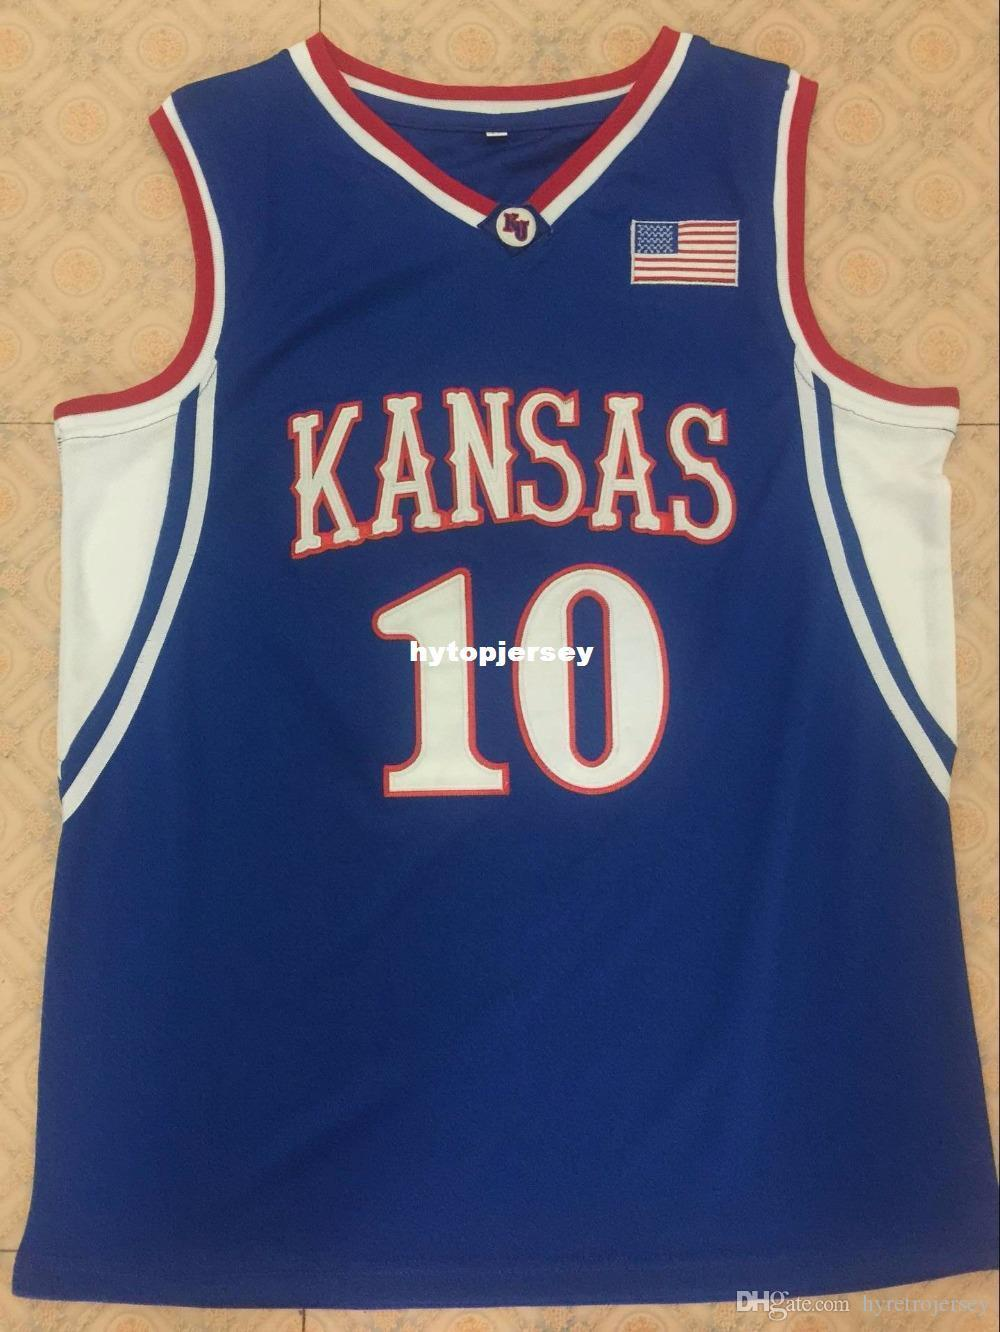 03-04 #10 KIRK HINRICH Topps Mark Of Excellence Auto Kansas Jayhawks Basketball Jersey Customize any number and name XS-6XL Vest Jerseys NCA